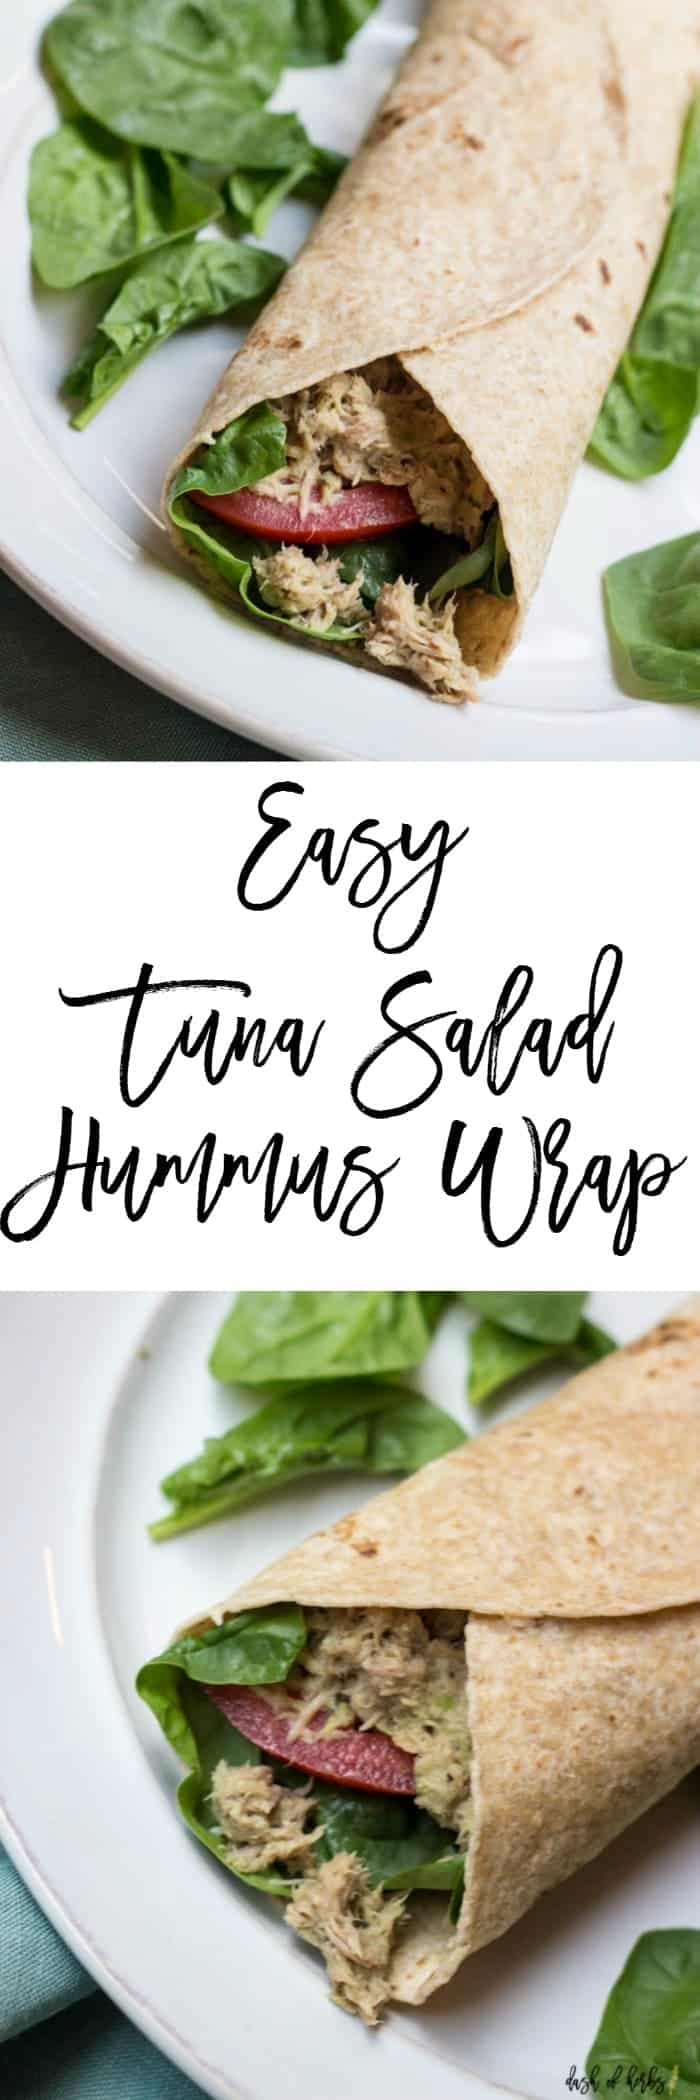 Easy Tuna Salad Hummus Wrap